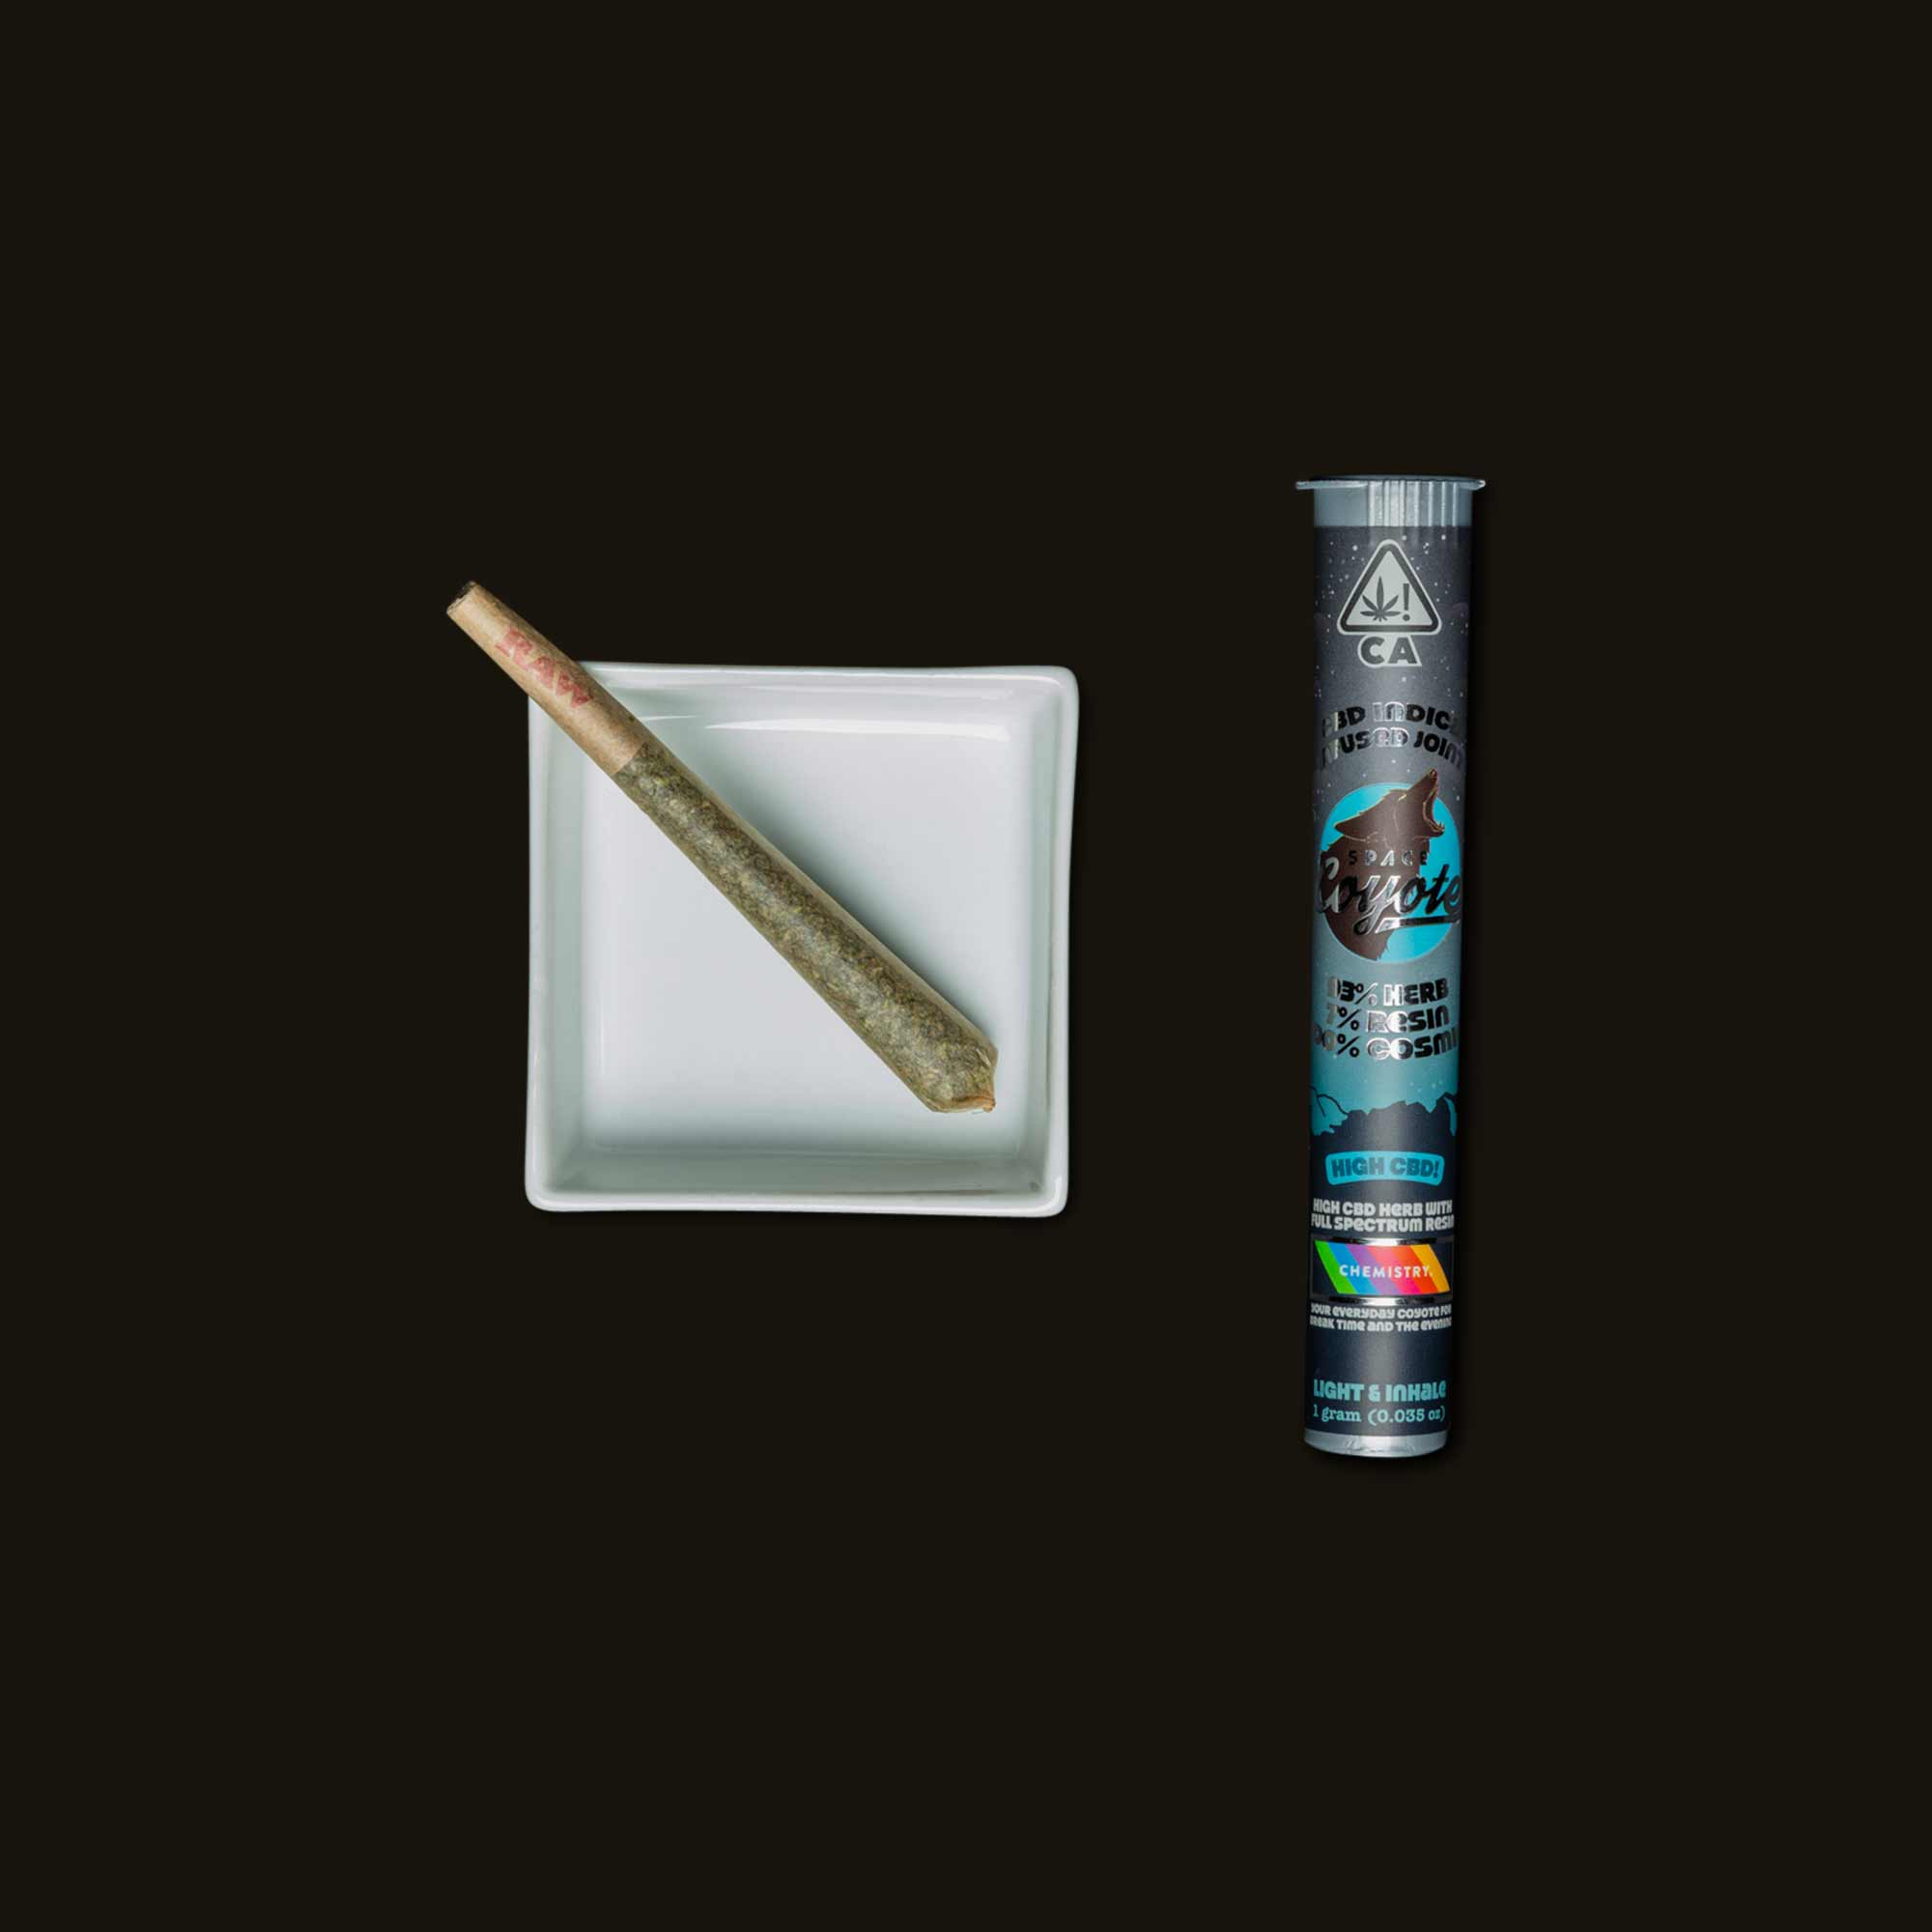 Space Coyote Indica High CBD Joint